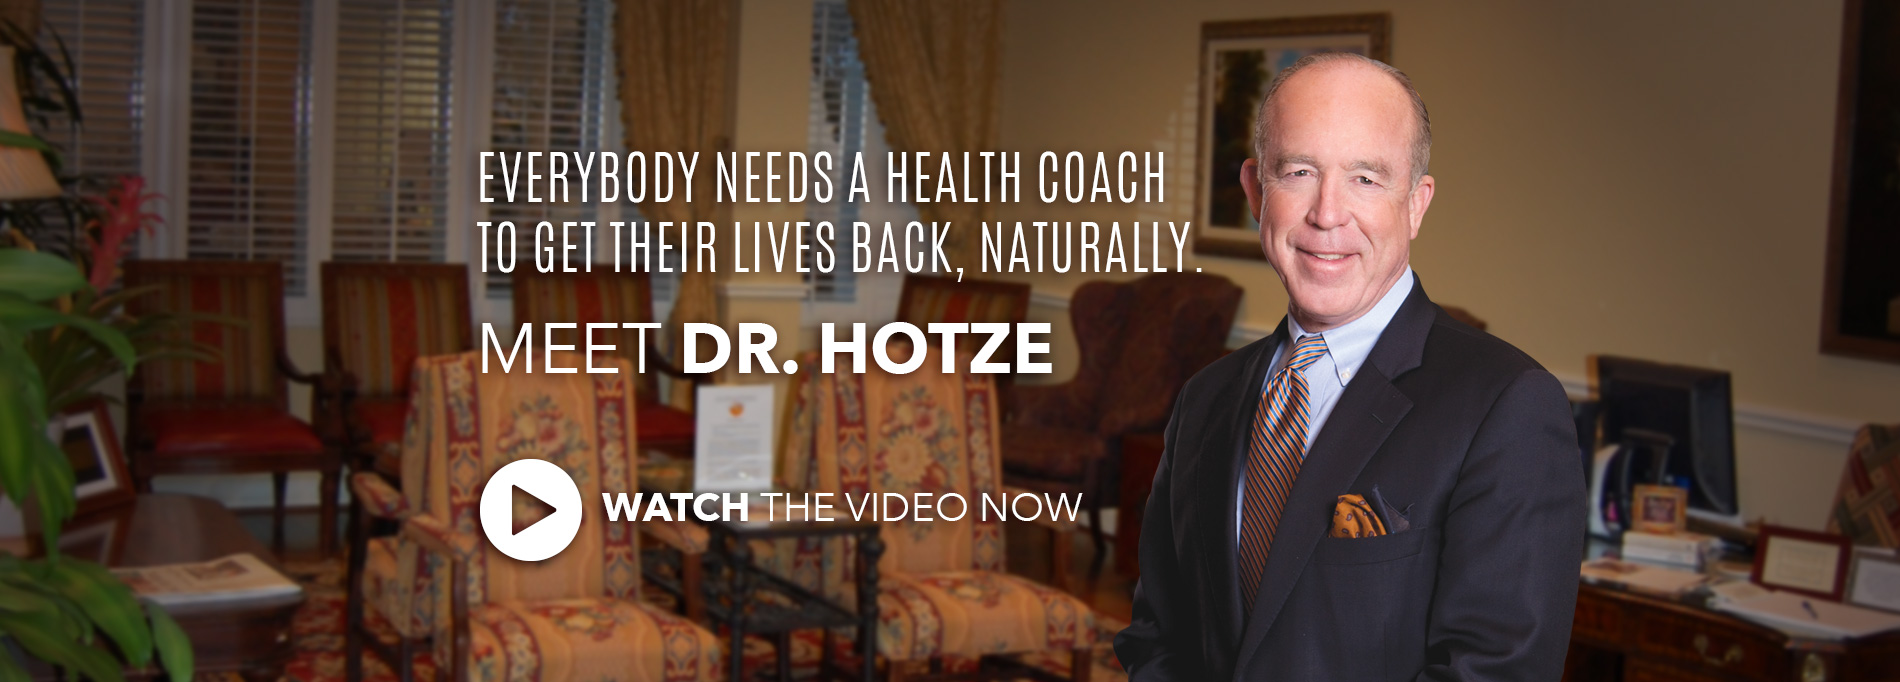 Meet-DrHotze-COACH-slide-video